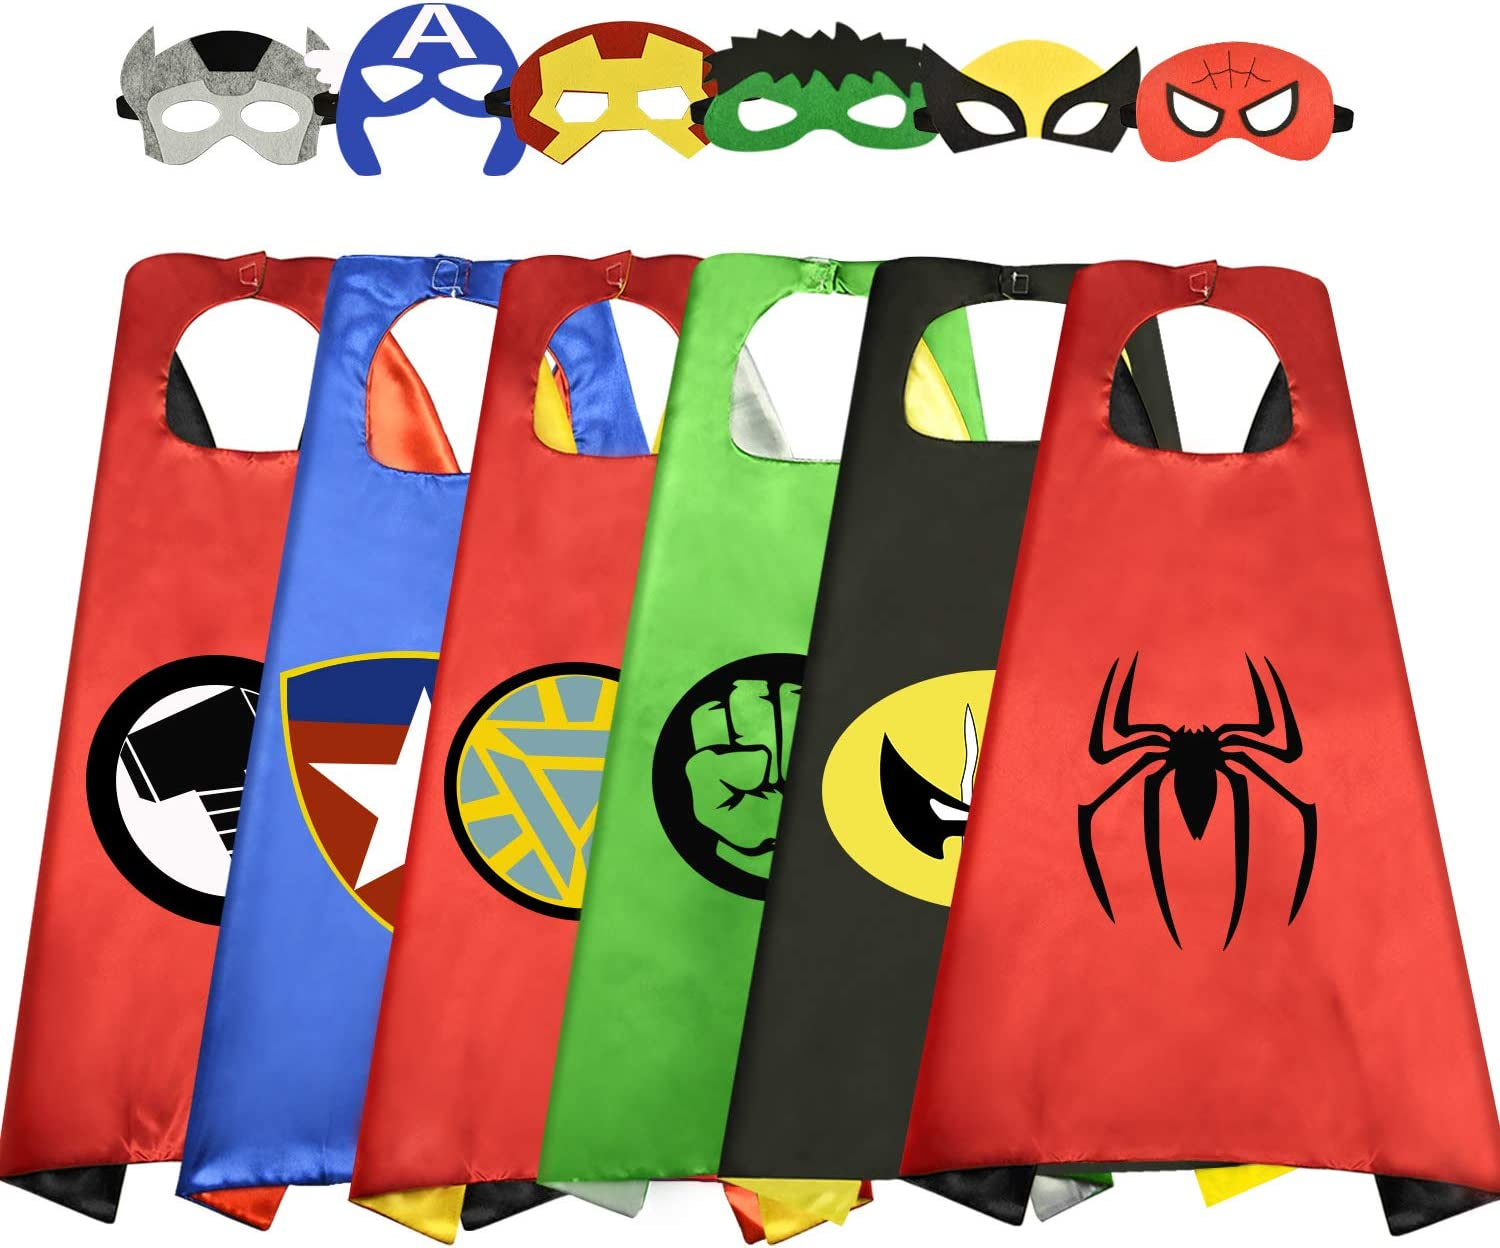 Wiki super hero capes for kids in various colors